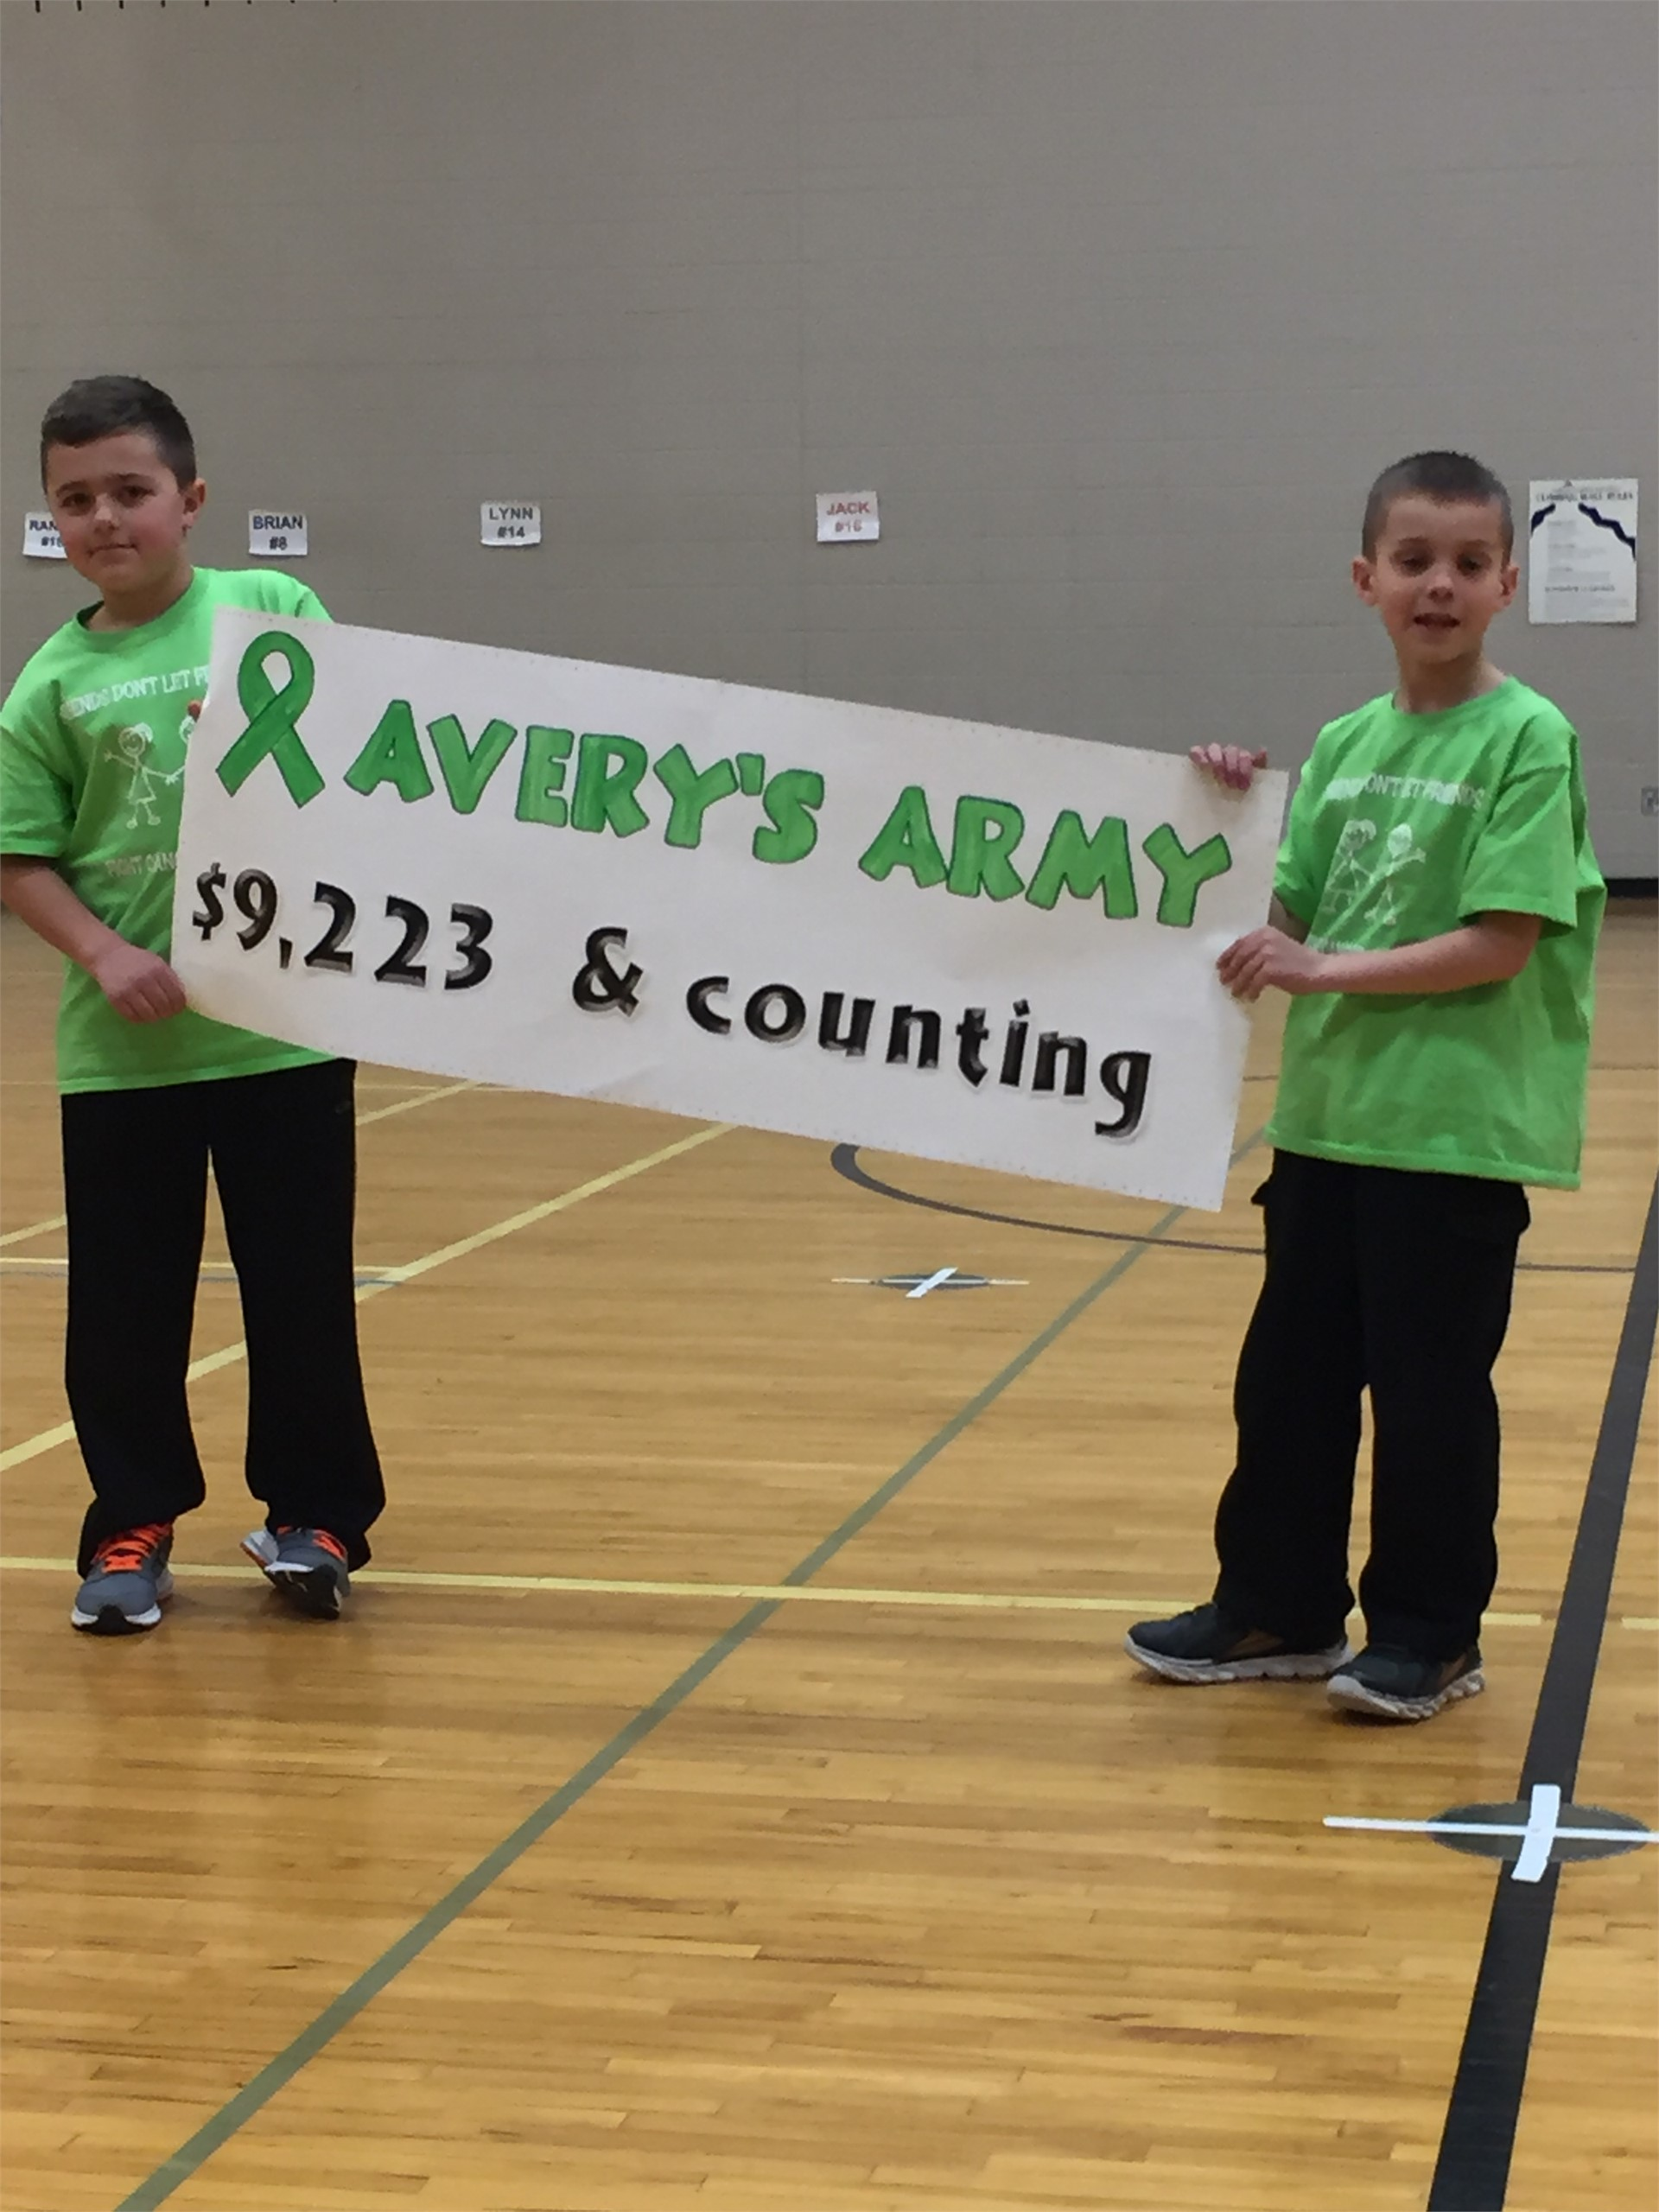 Avery's Army!